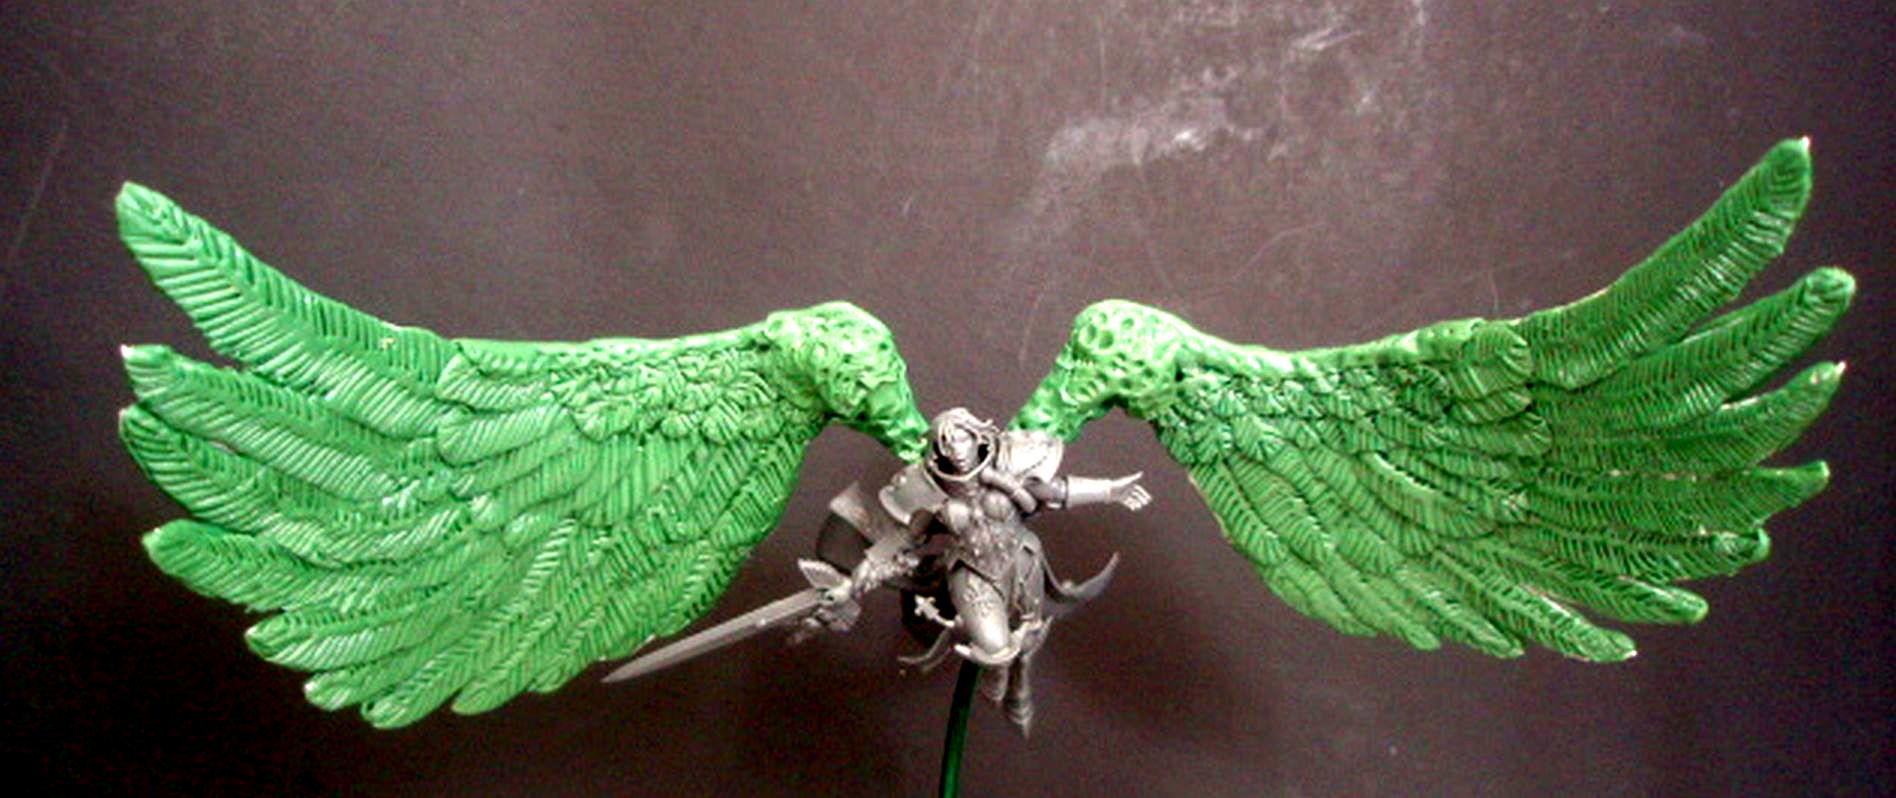 Sculpting, Seraphim, Seraphim Wings, Sisters Of Battle, St Celestine Sculpt, St Celestine Wings